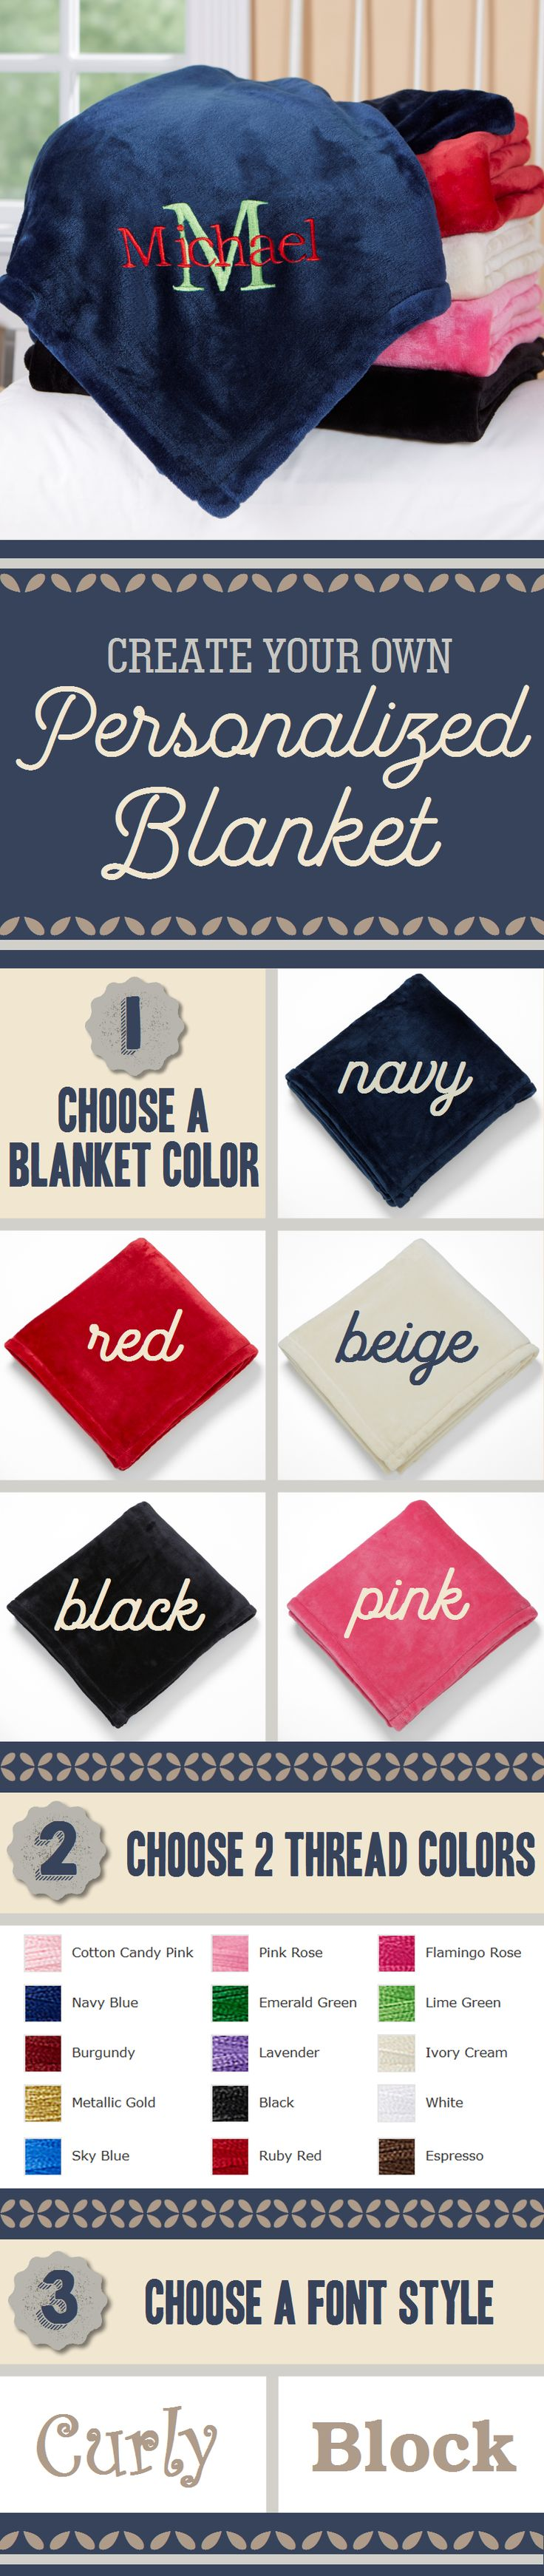 These personalized blankets are the best! They come with so many options! You can choose the blanket color, and 2 thread colors and the font and they'll embroider any name and initial - such a great gift for kids! They can snuggle up with this embroidered kids blanket or take it on sleepovers! Great gift idea!